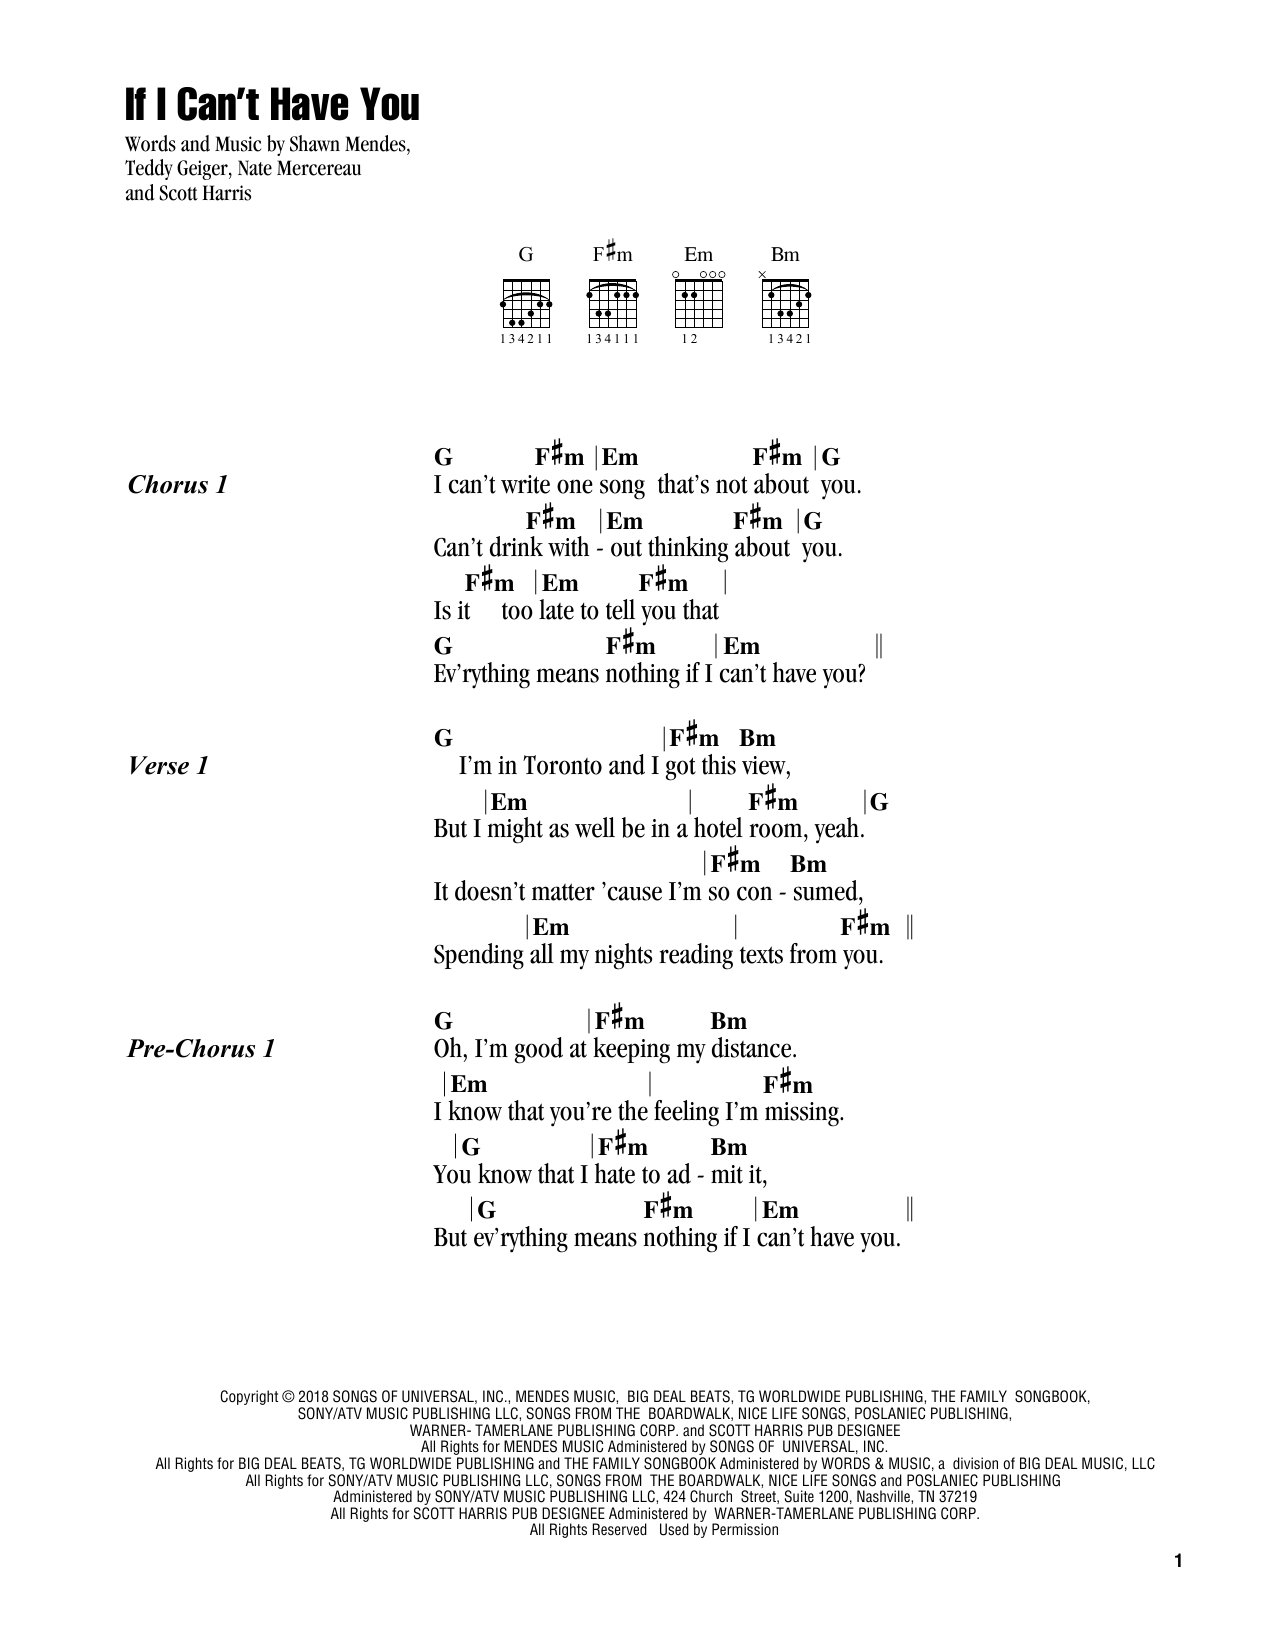 Shawn Mendes If I Can T Have You Sheet Music Notes Chords Score Download Printable Pdf Ukelele Songs Guitar Chords And Lyrics Shawn Mendes Songs